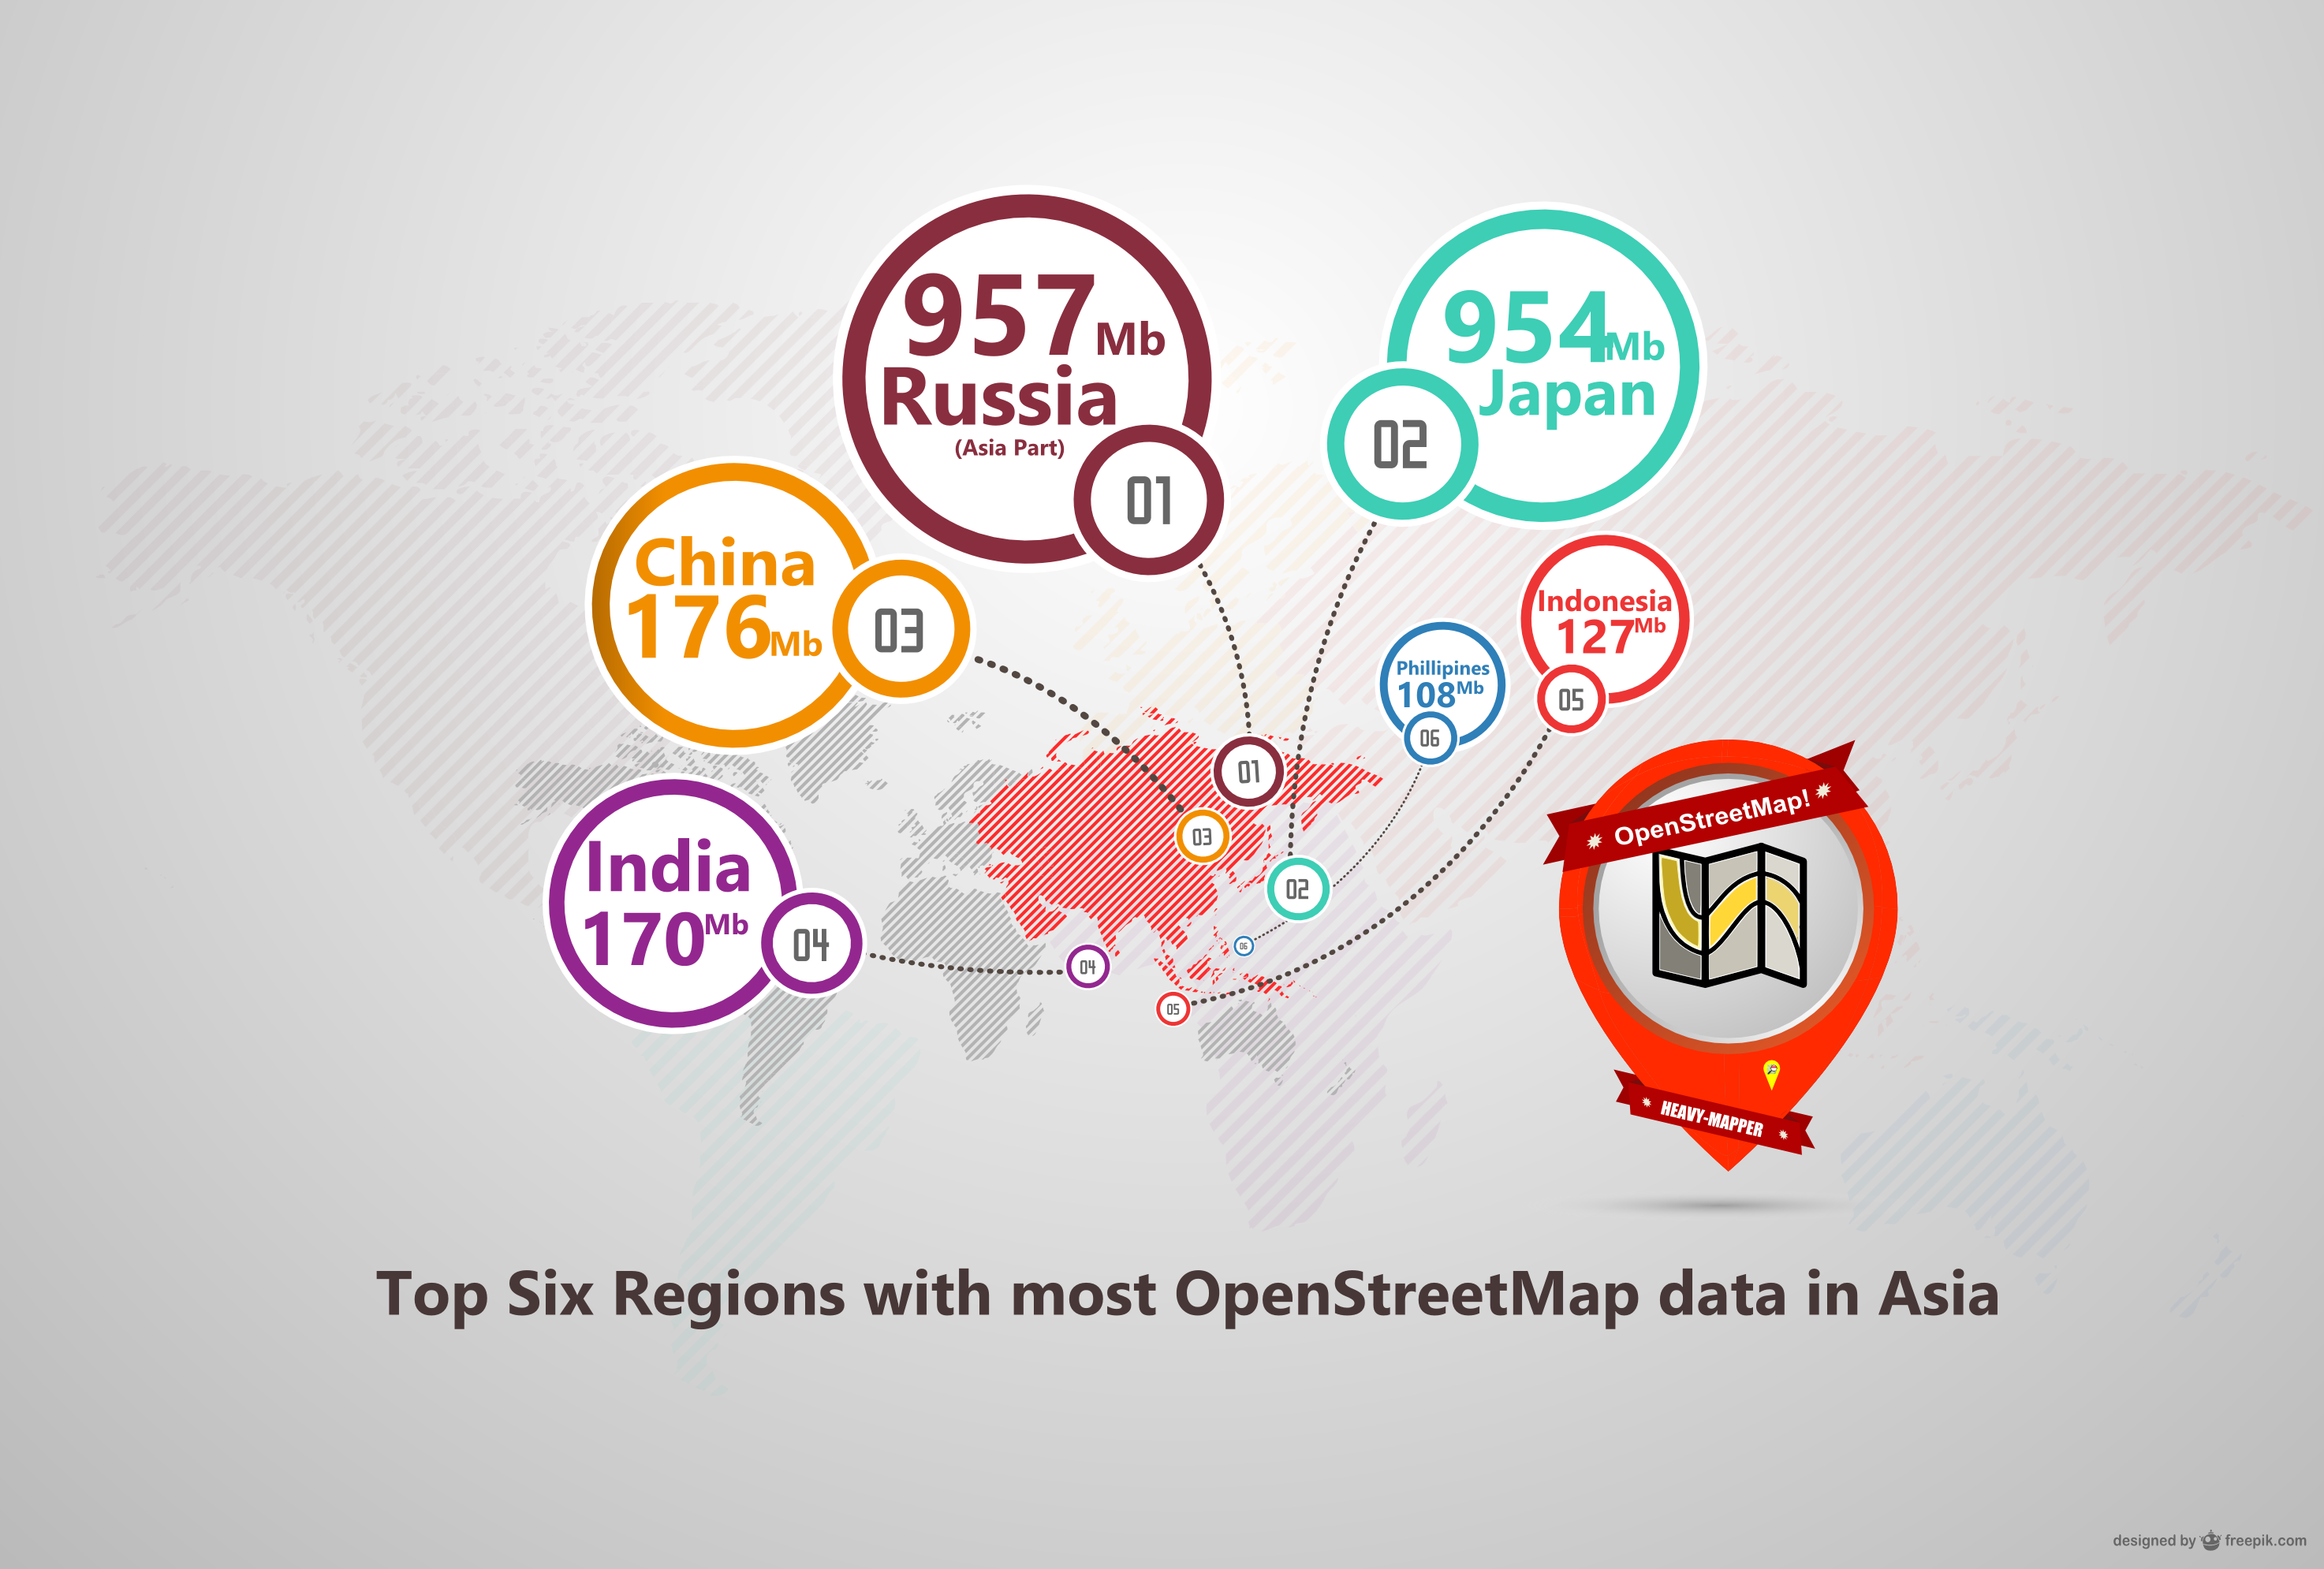 Six Top Regions with Most OpenStreetMap Data in Asia